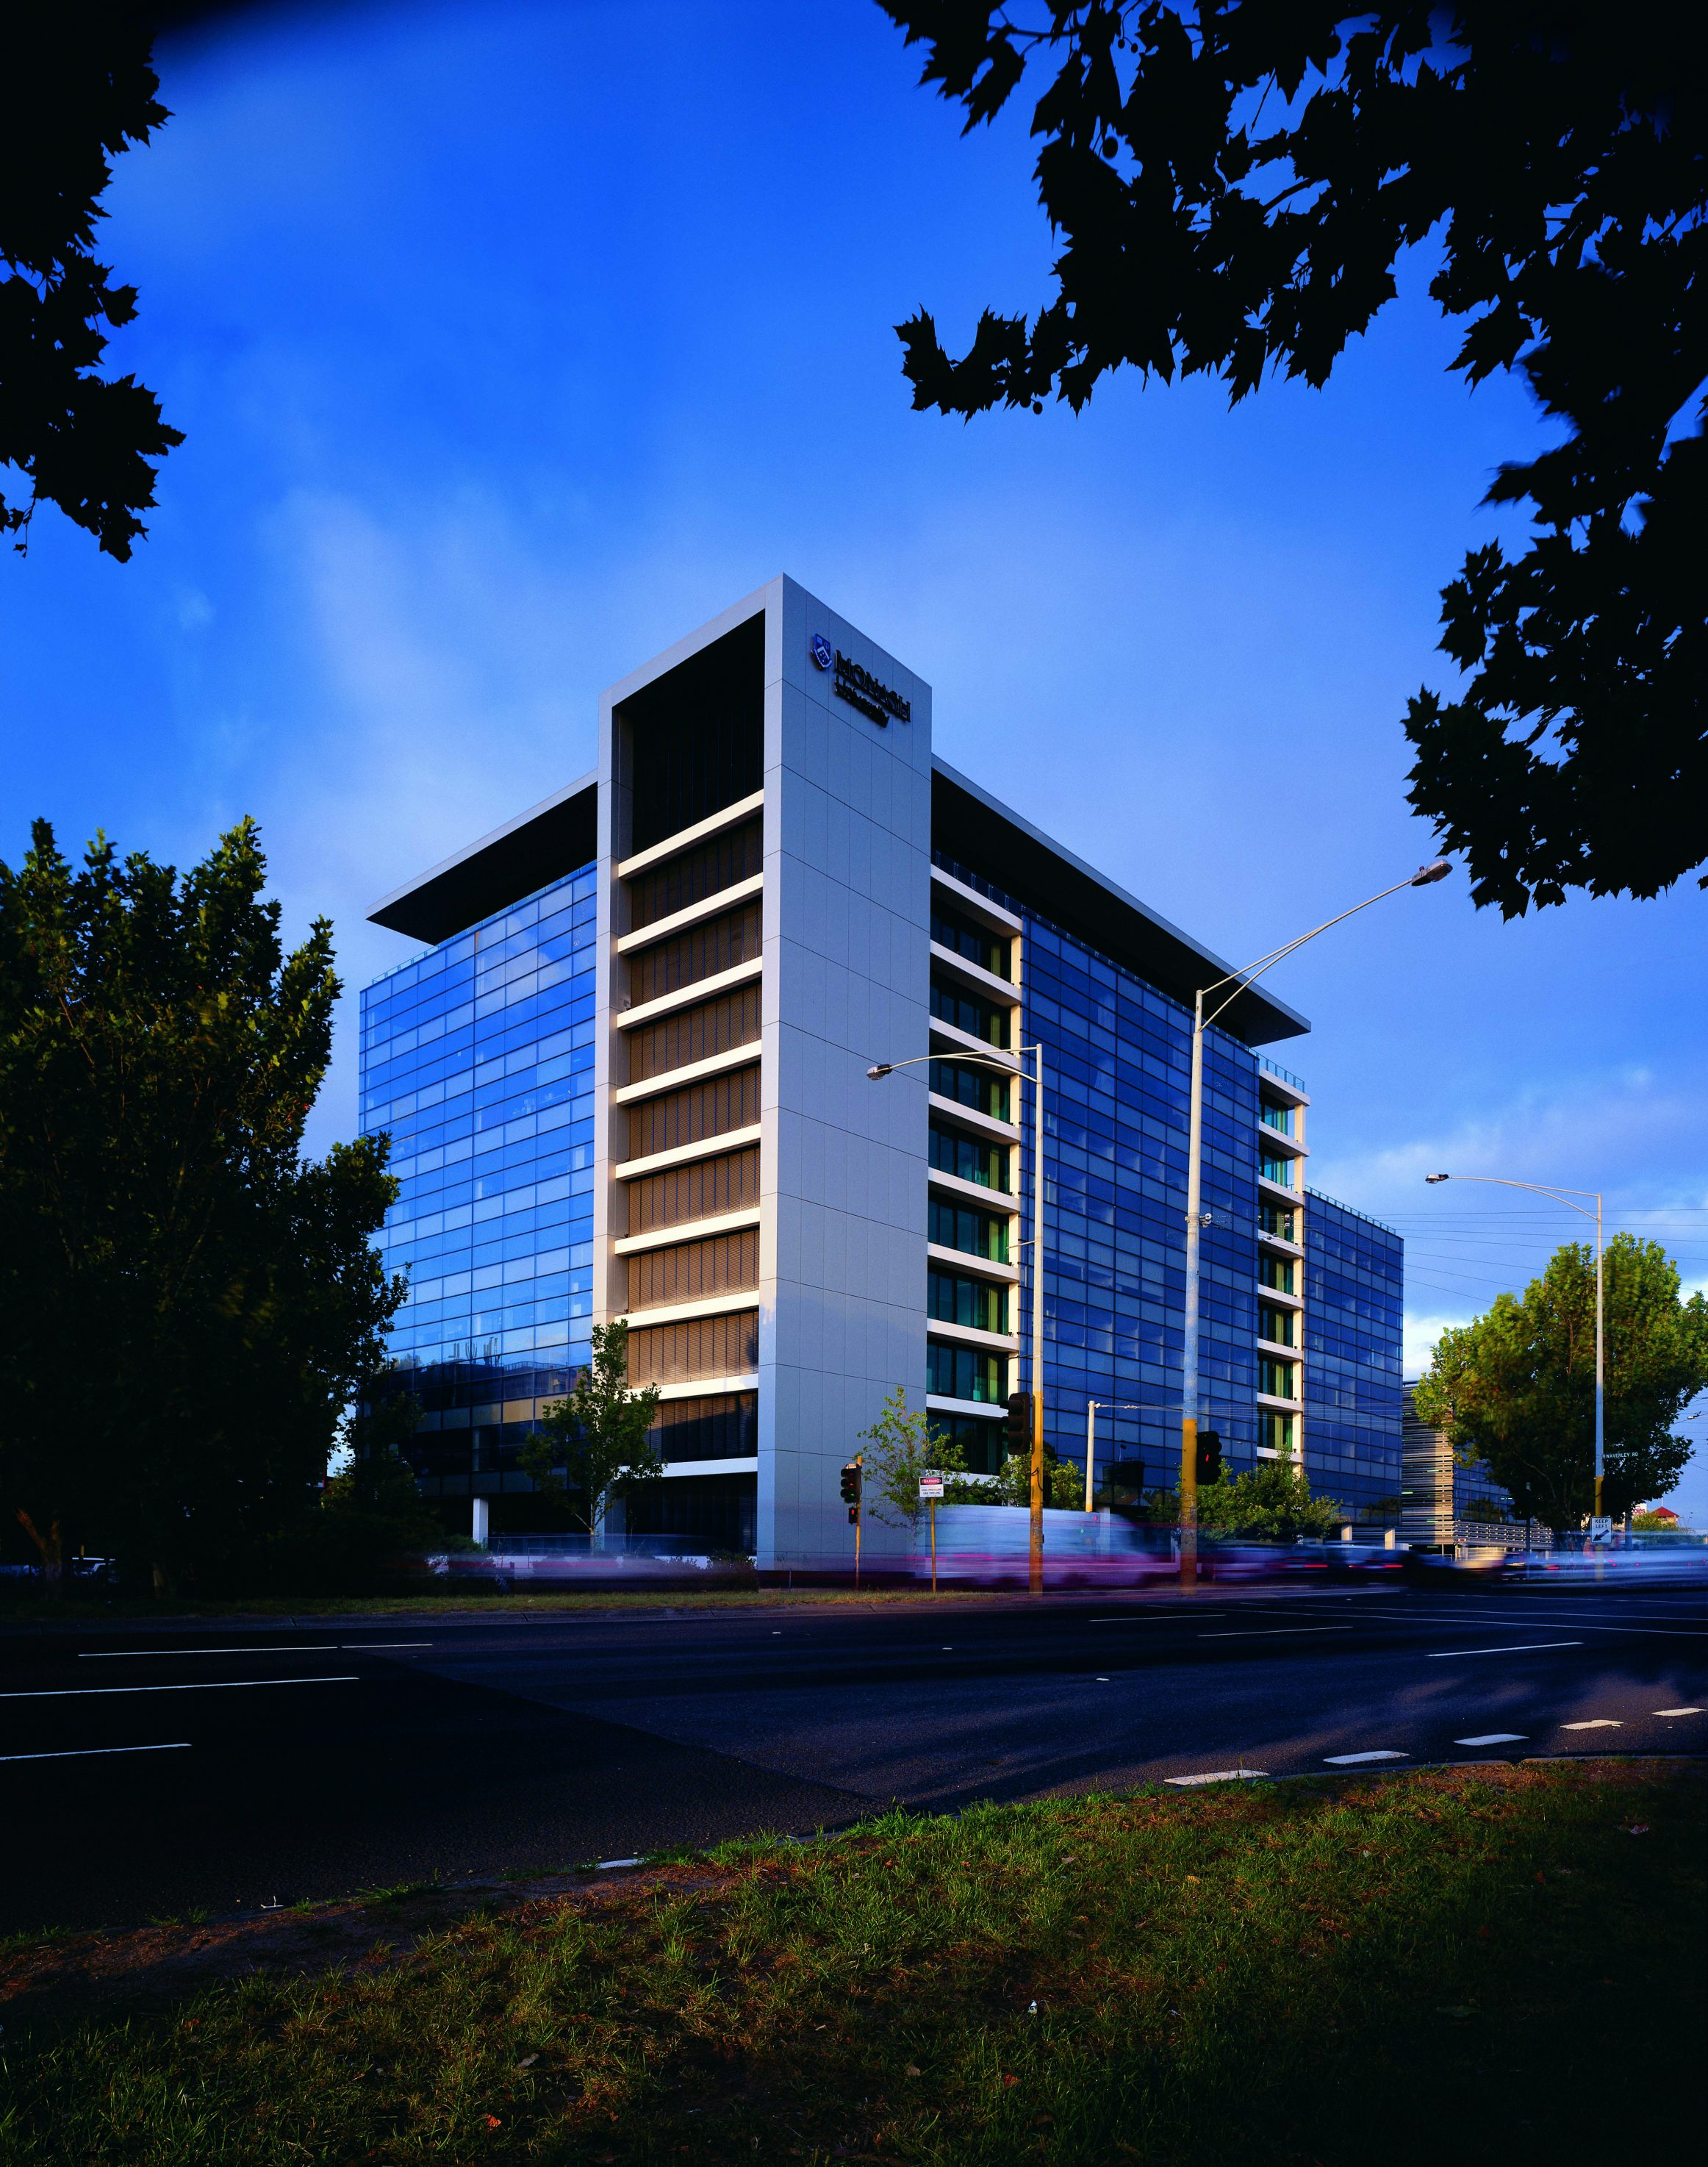 monash university caulfield external facade view